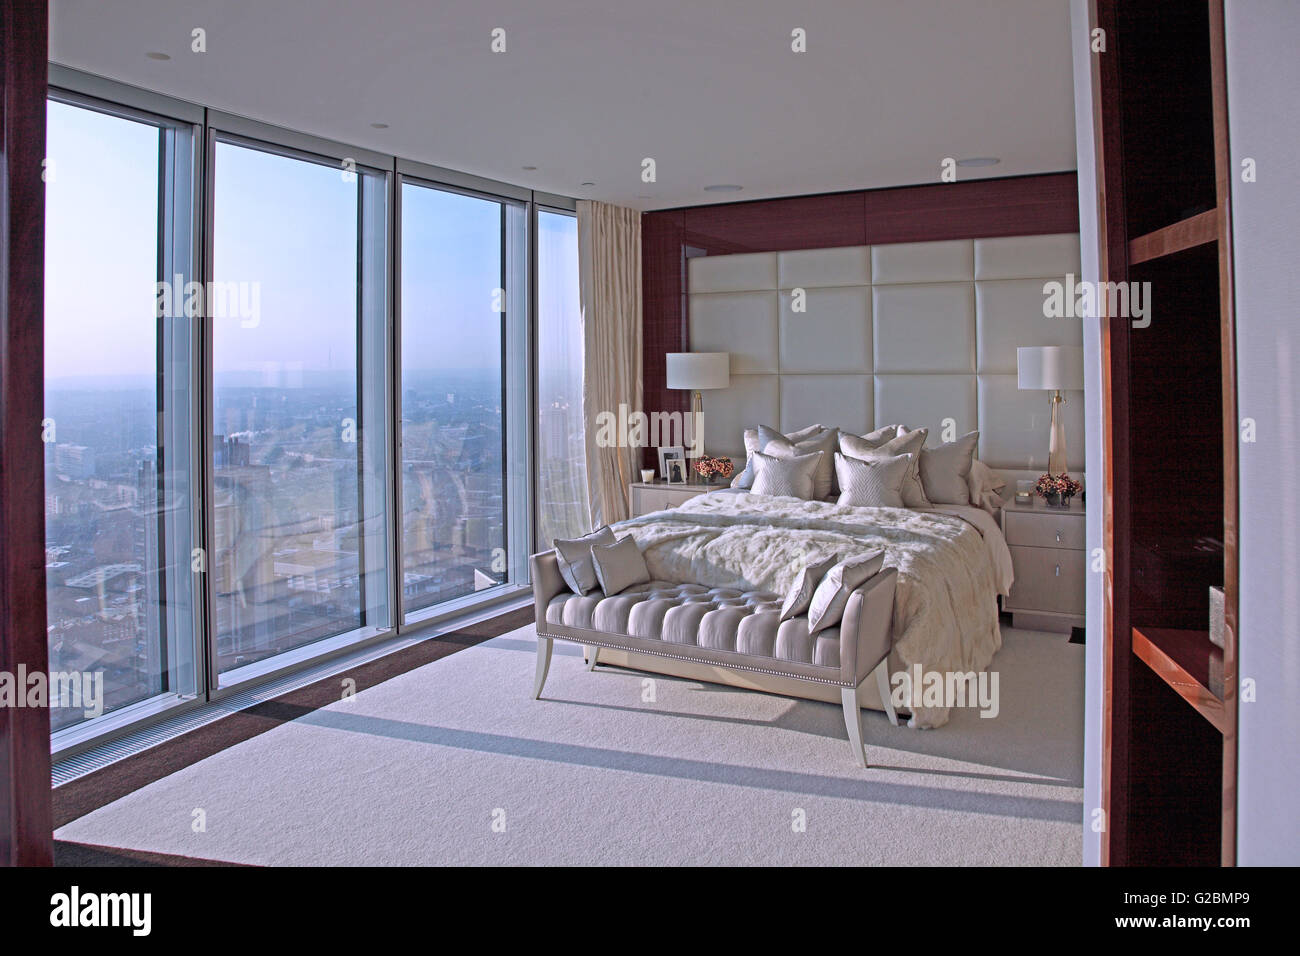 Interior of a flat on the 35th floor of The Tower, a luxury residential development at Vauxhall, London, UK. - Stock Image